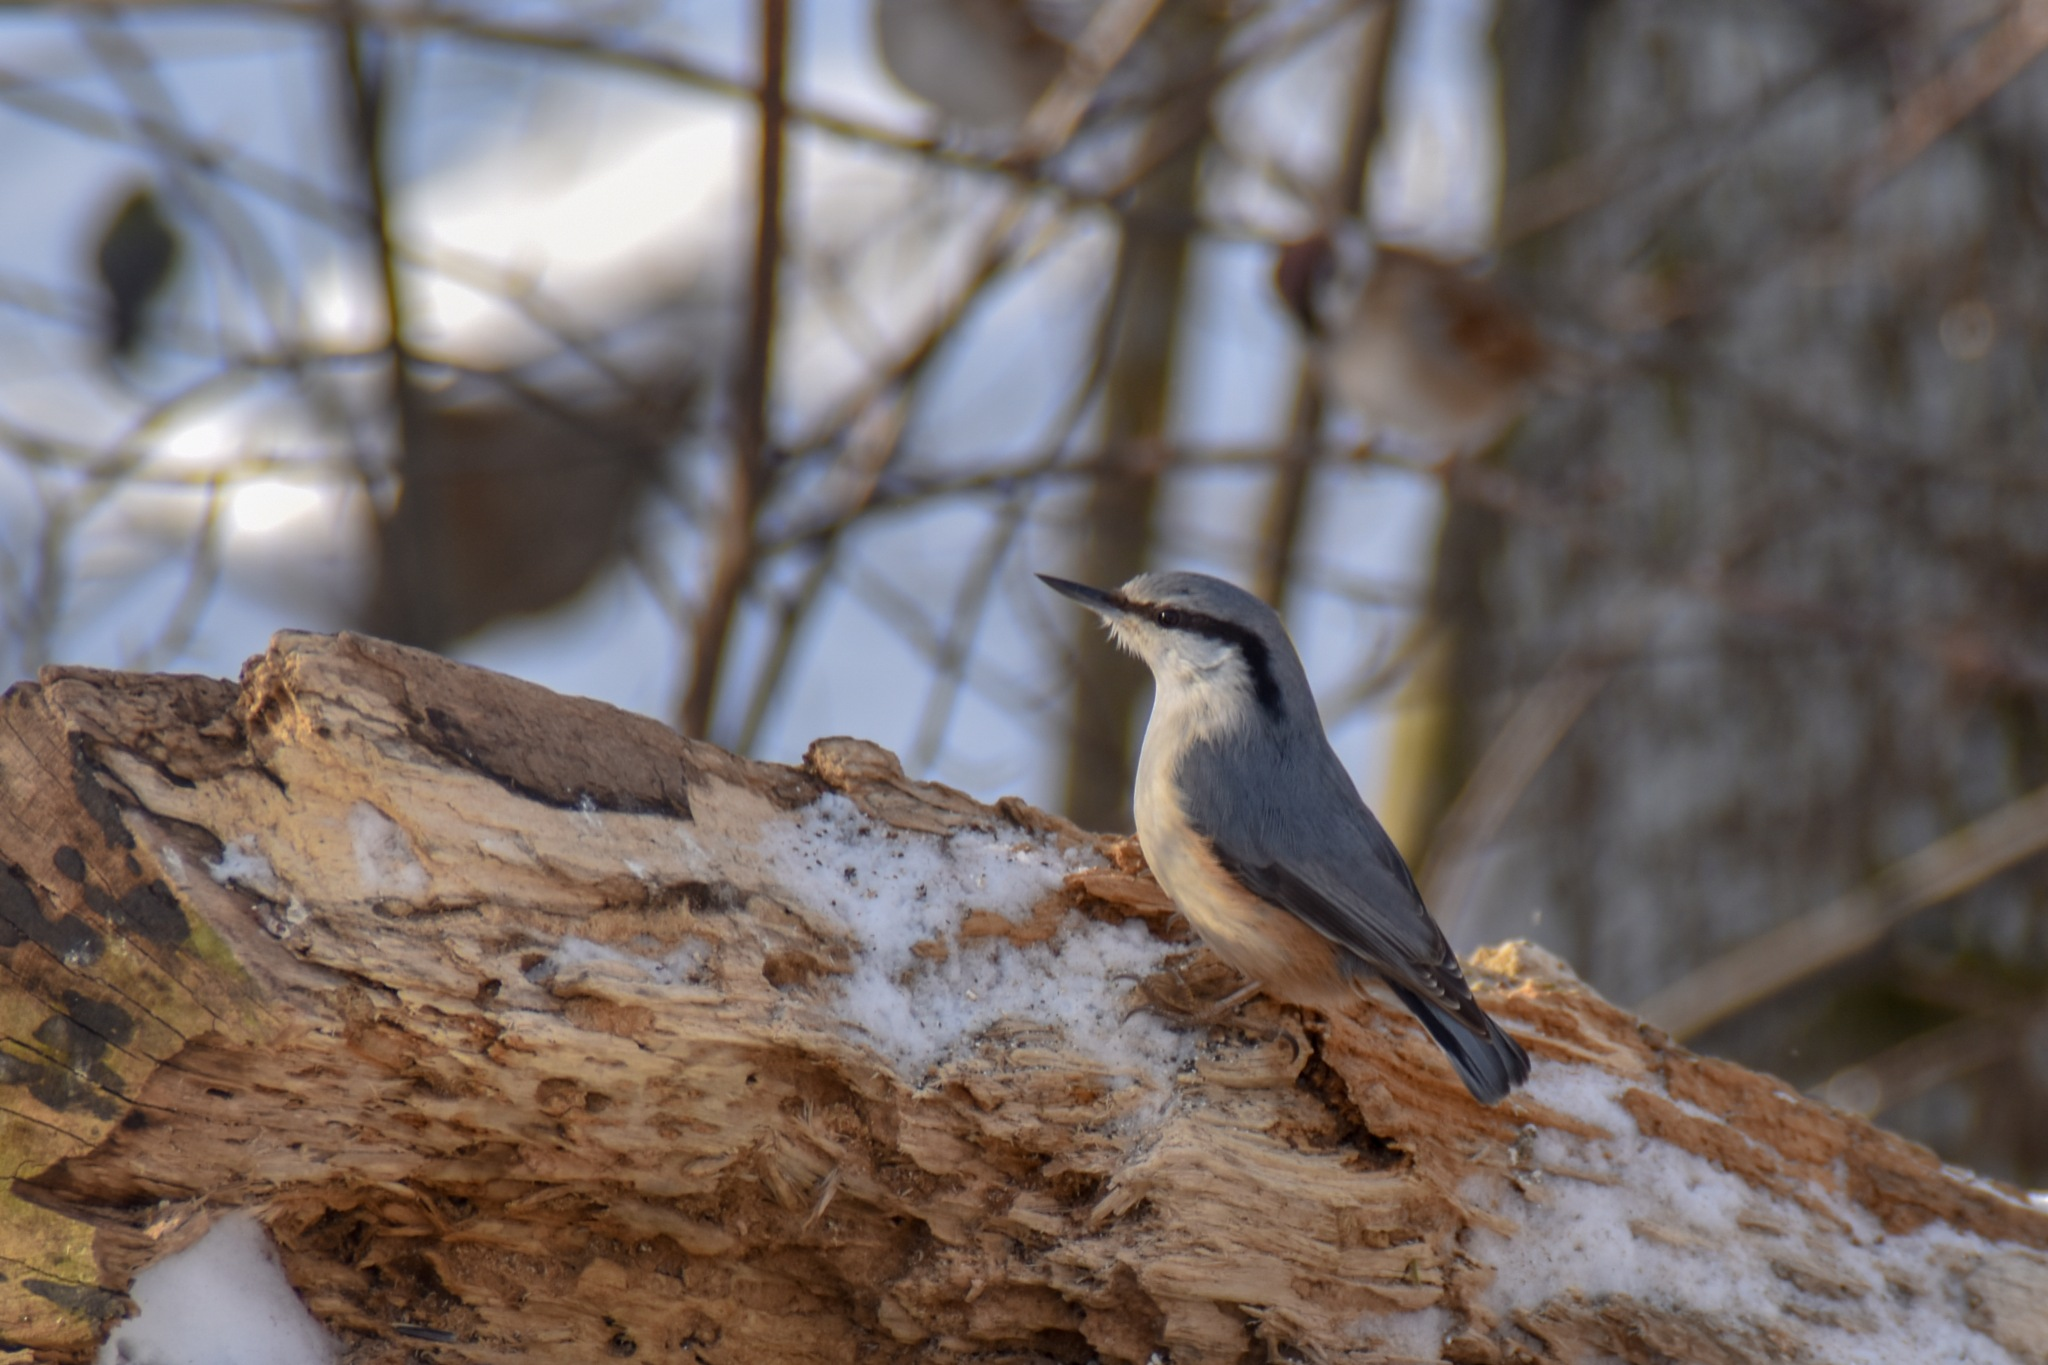 Nuthatch by rollepersson